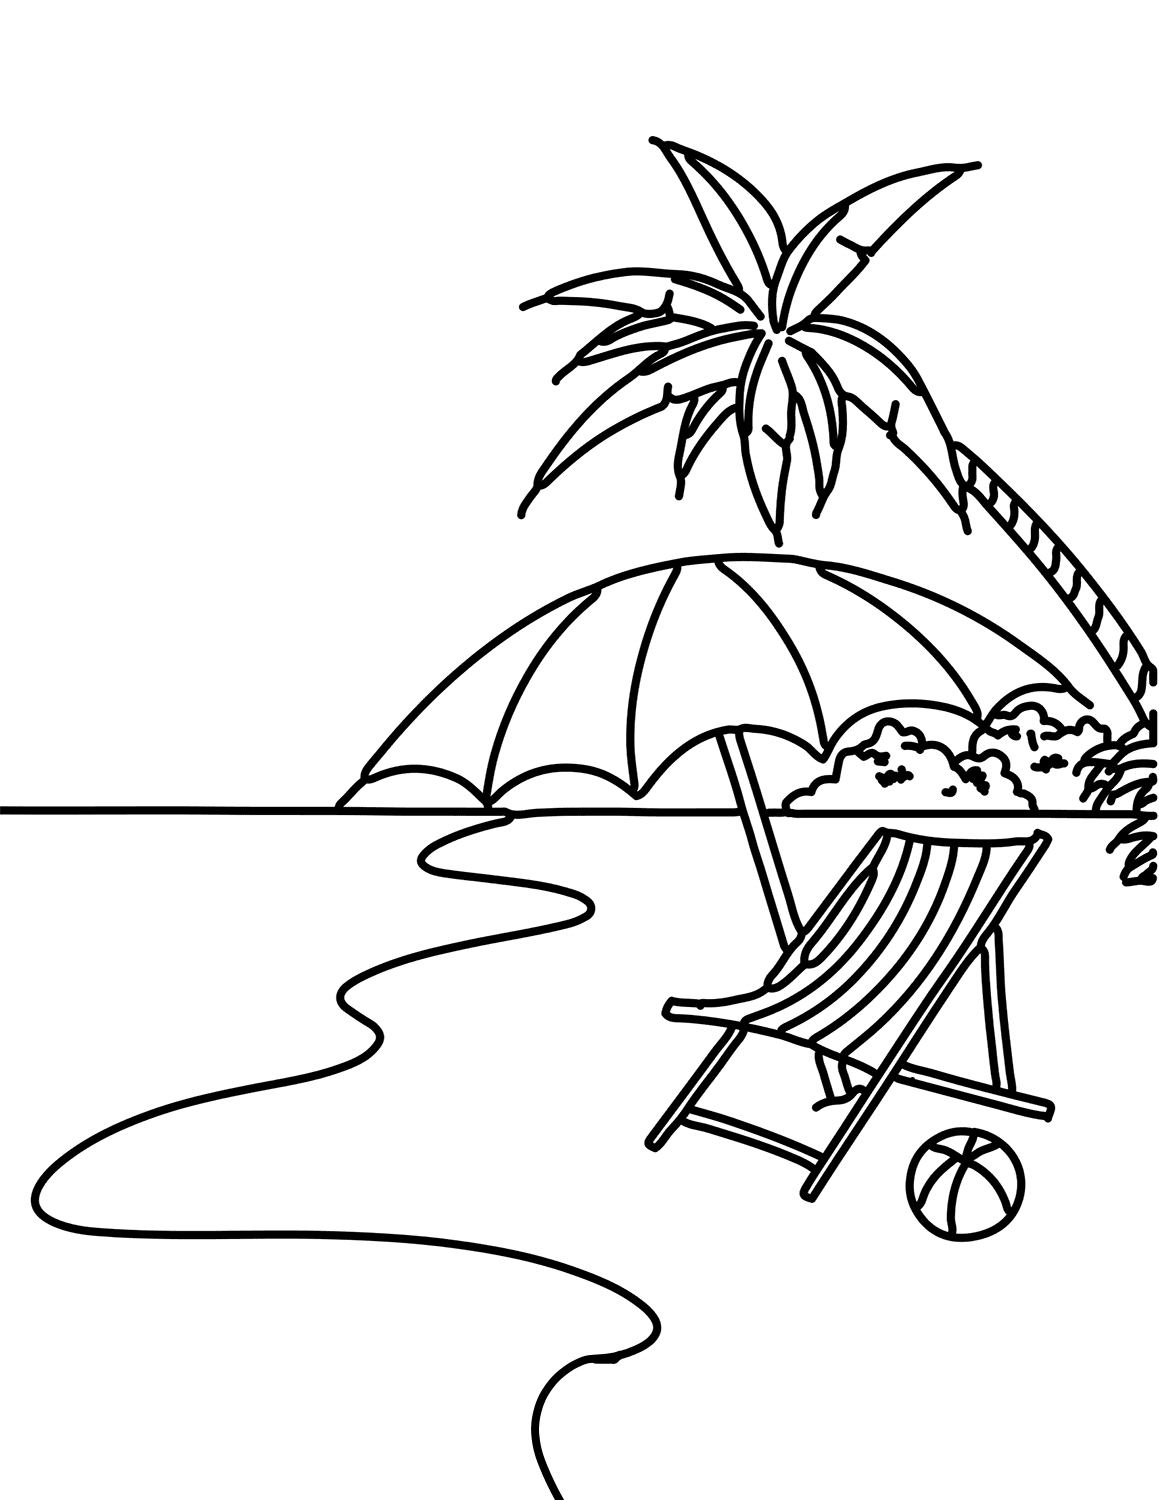 beach scene coloring pages free printable beach coloring pages for kids scene coloring beach pages